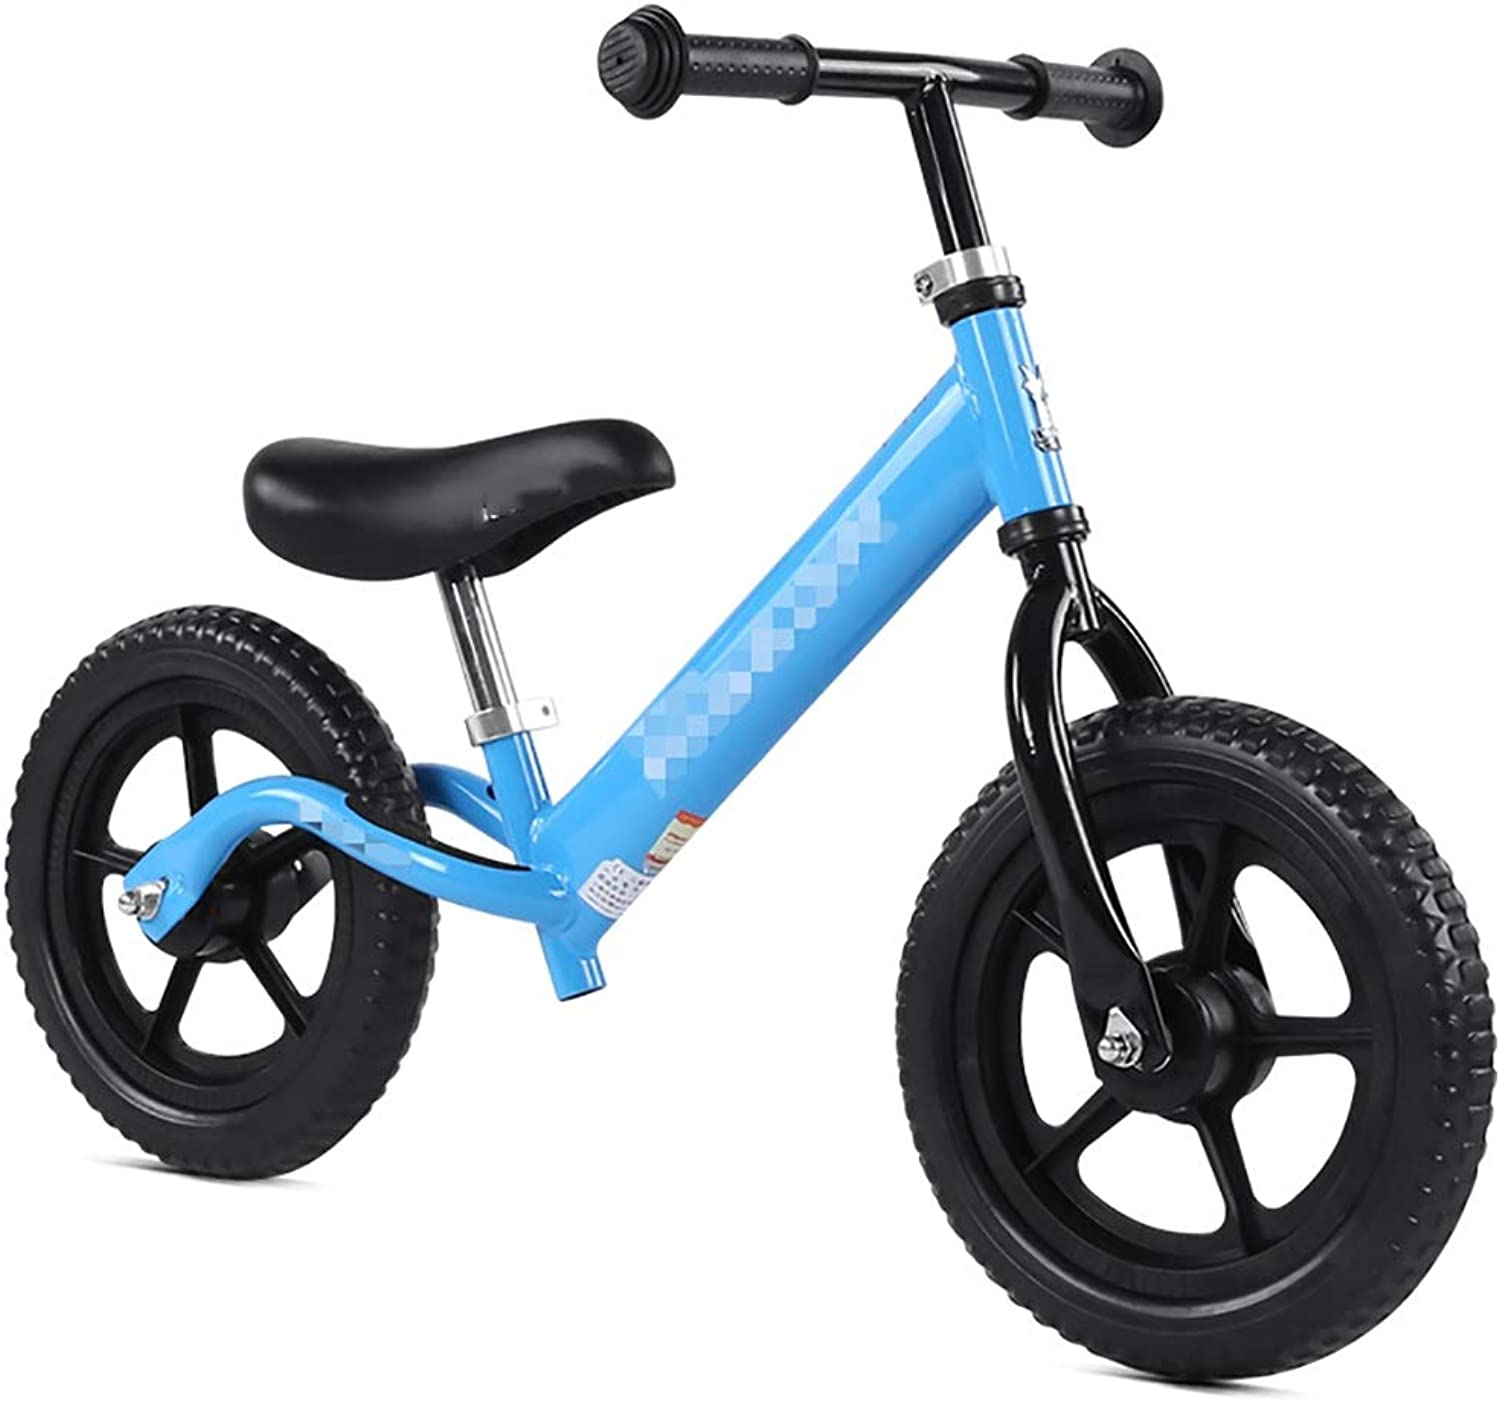 WENJUN balance bike, Classic Lightweight No-Pedal Learn To Ride Pre Bike Balance Bike With Alloy Wheels For Kids,Acupuncture And Moxibustion Surfaces,3 colors ( color   bluee )